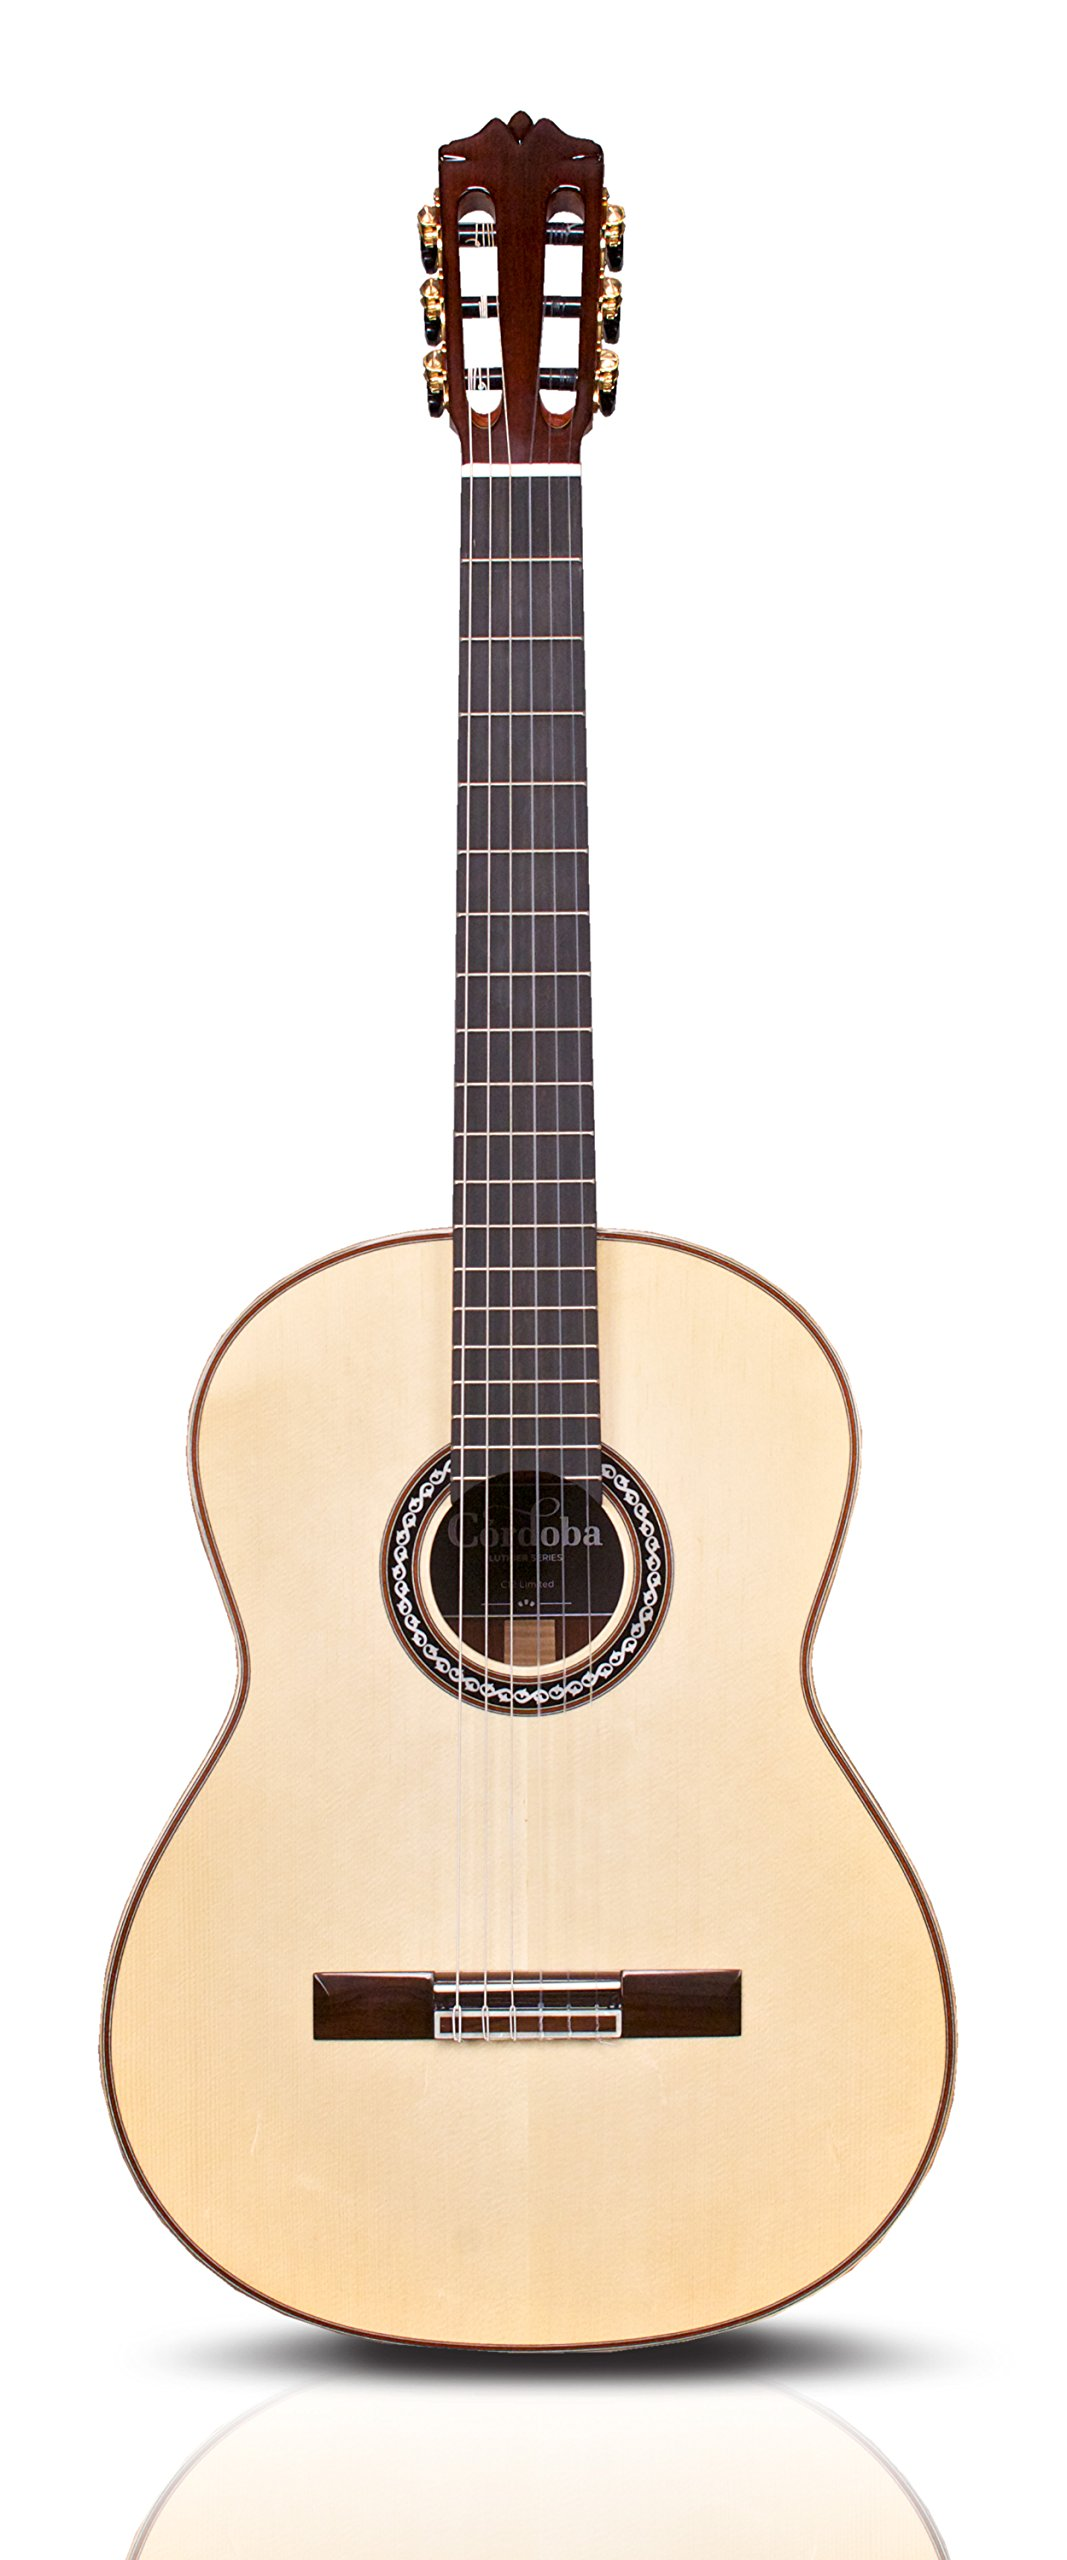 Cordoba C12 Limited SP Acoustic Nylon String Classical Guitar